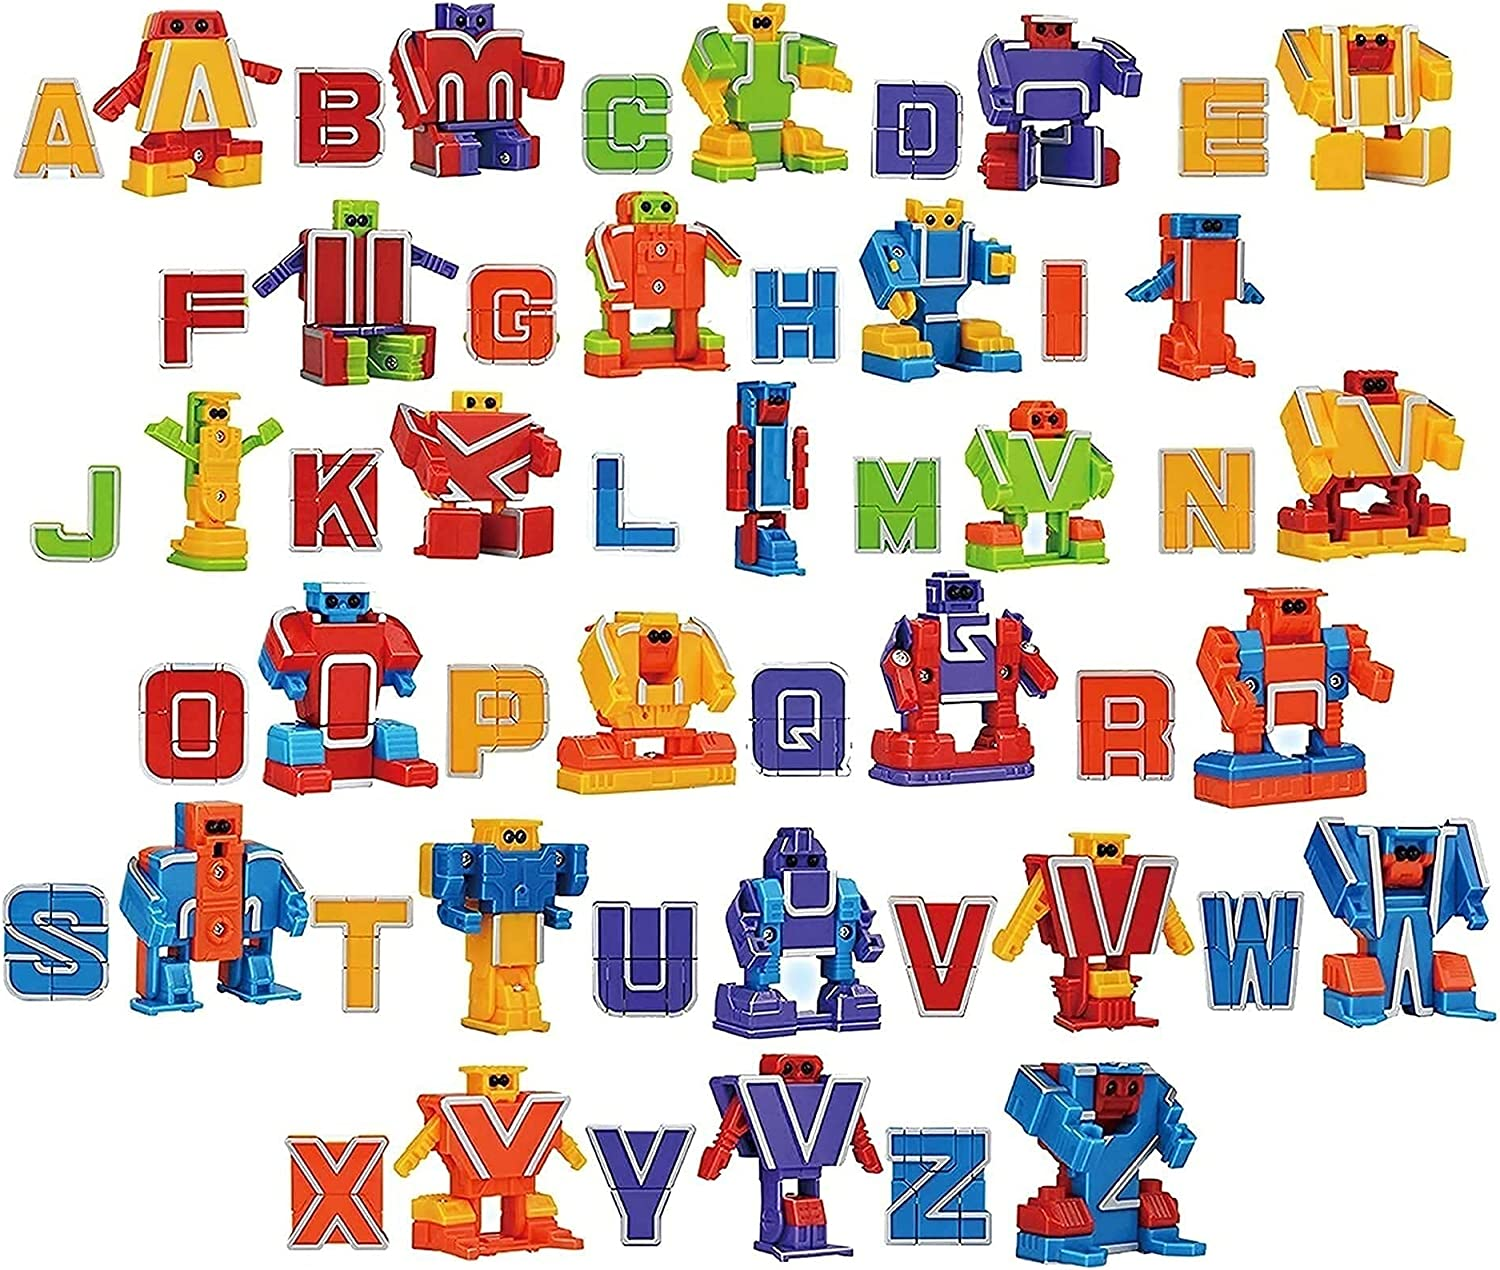 ABC Learning Transformers Toys Limited price Sales for sale Alphabet For A Robots Kids